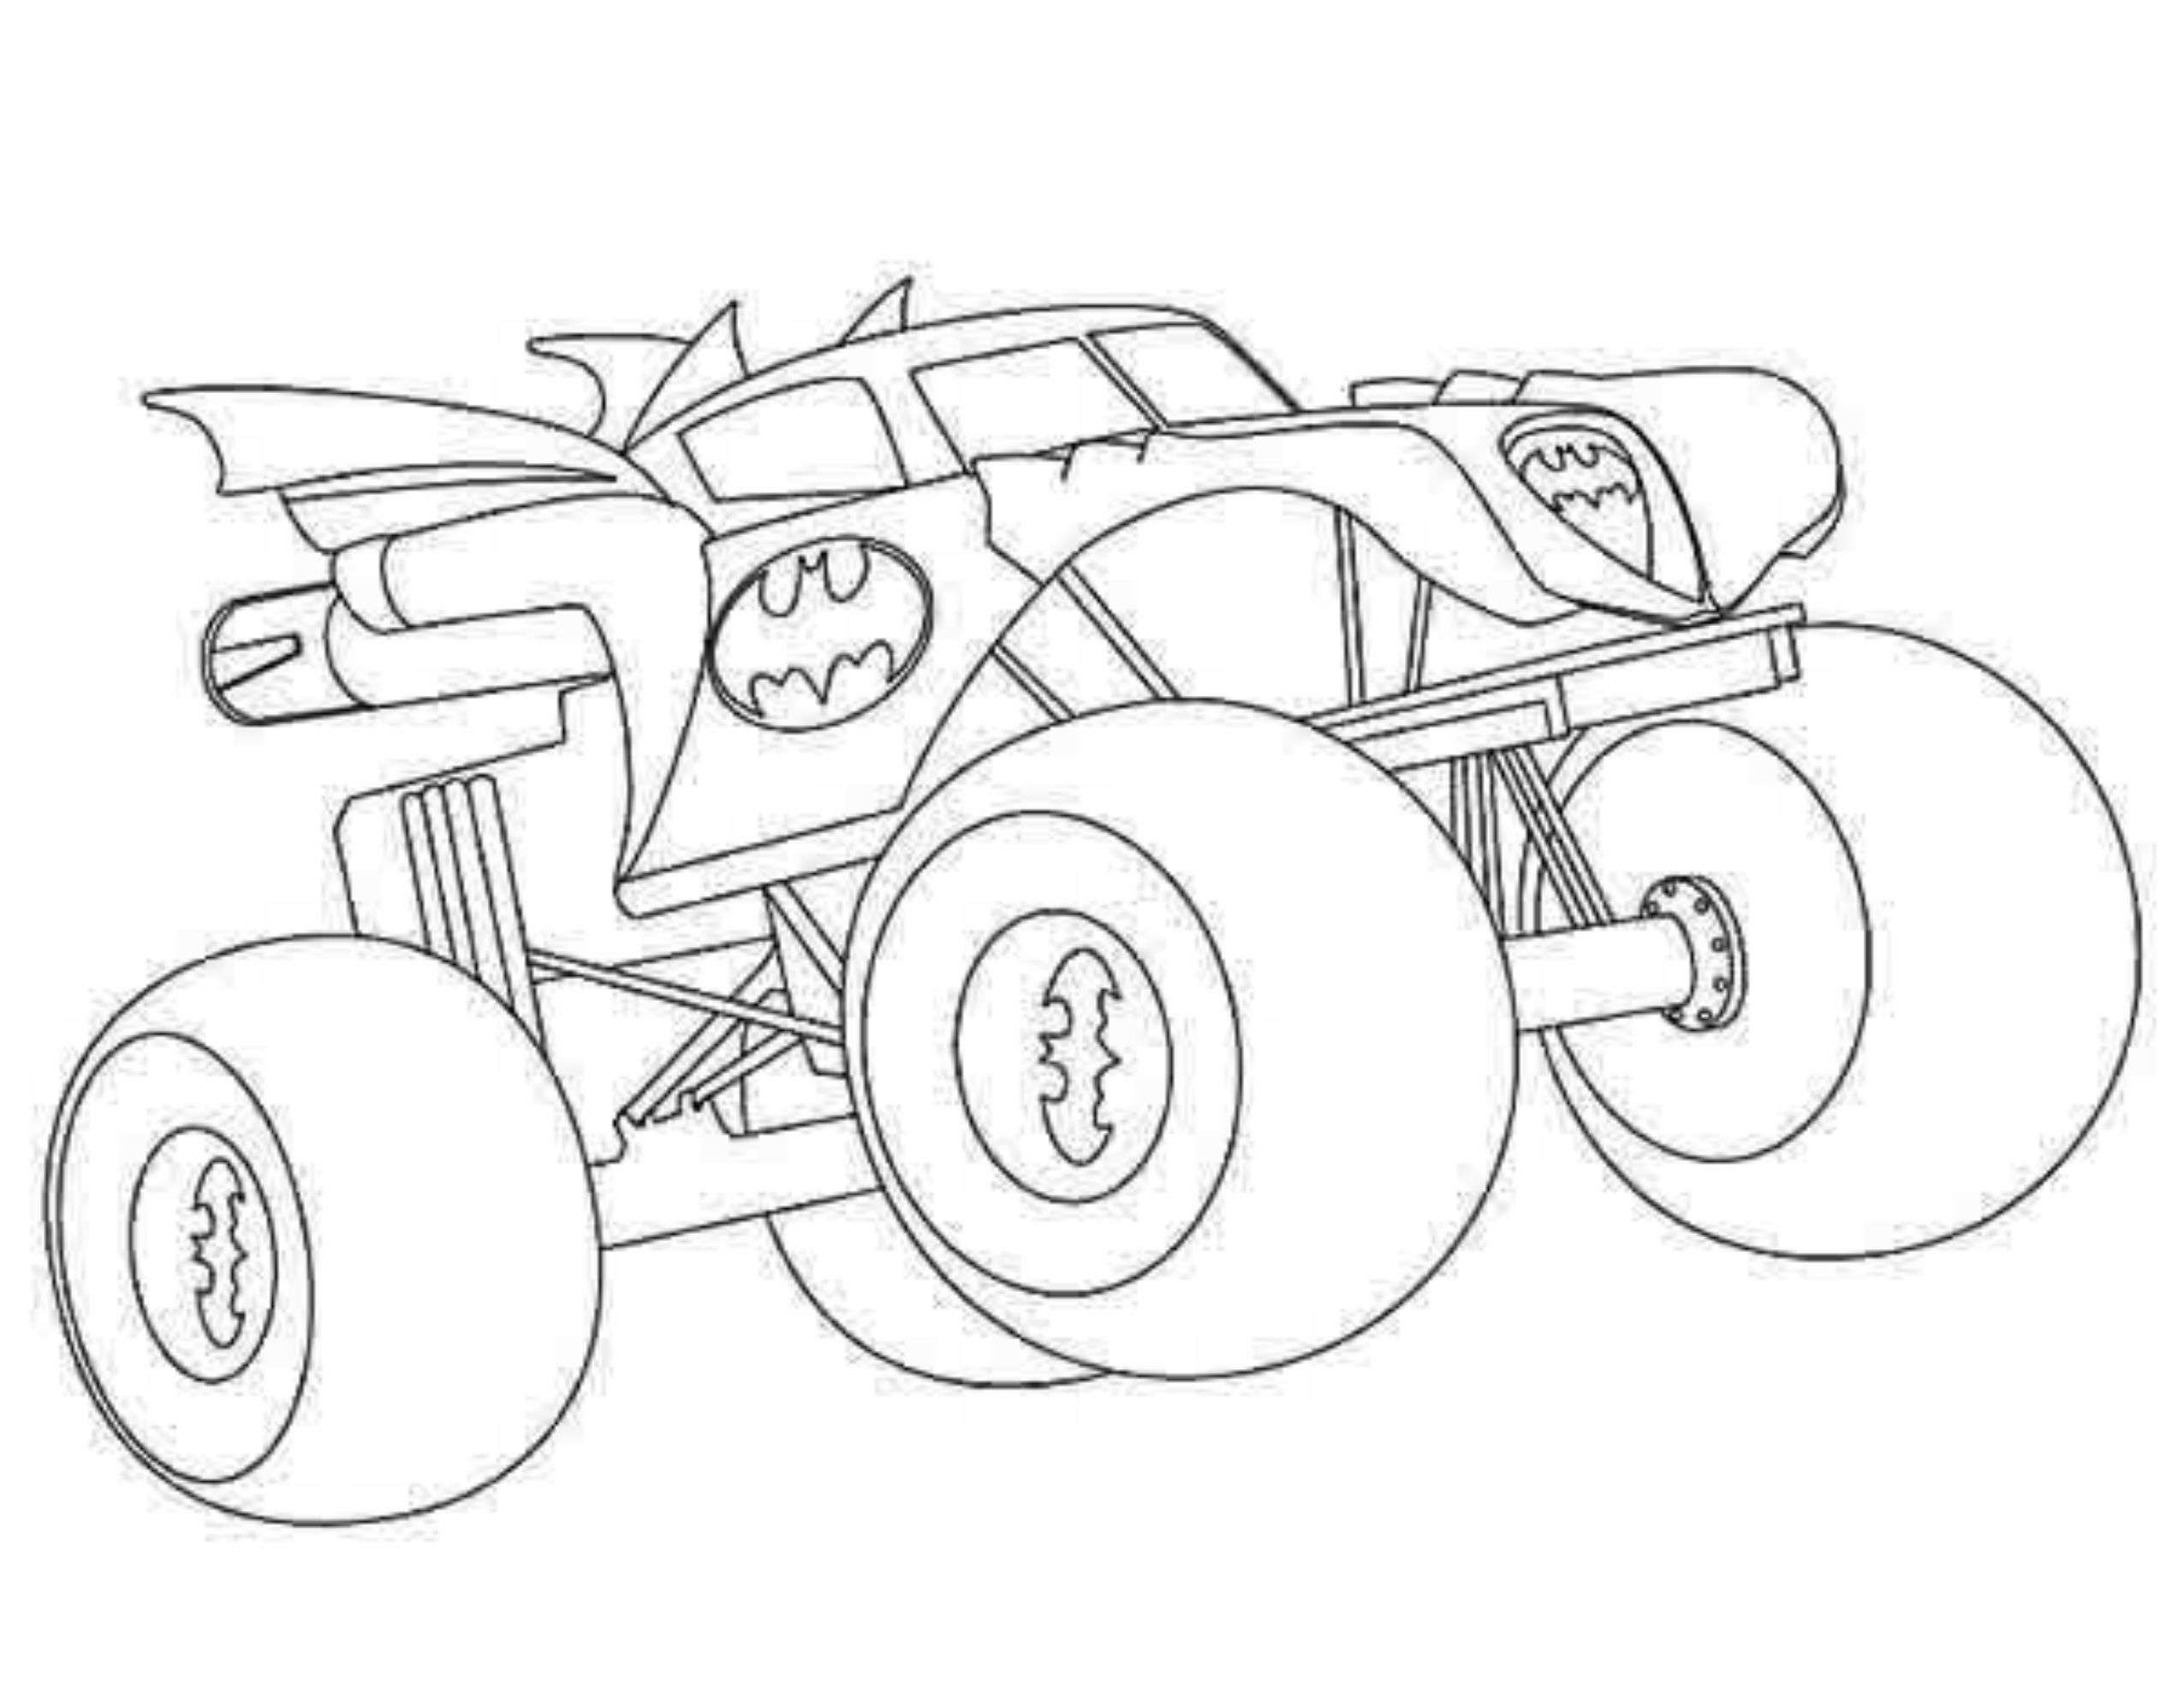 monster truck coloring pages easy simple monster truck coloring page monster pages truck coloring easy